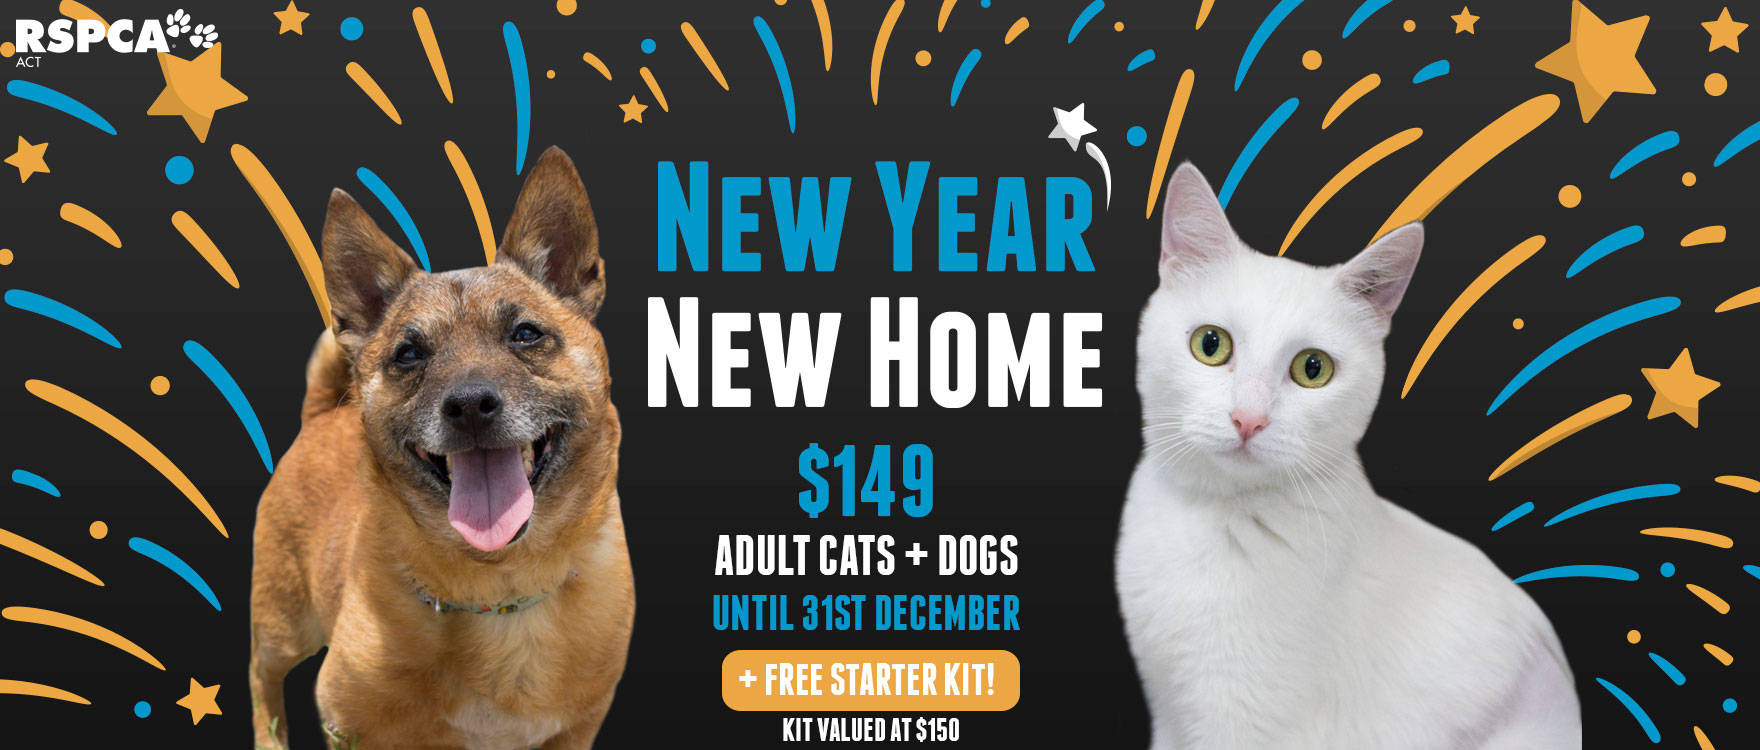 Help us find forever homes for our adult animals!